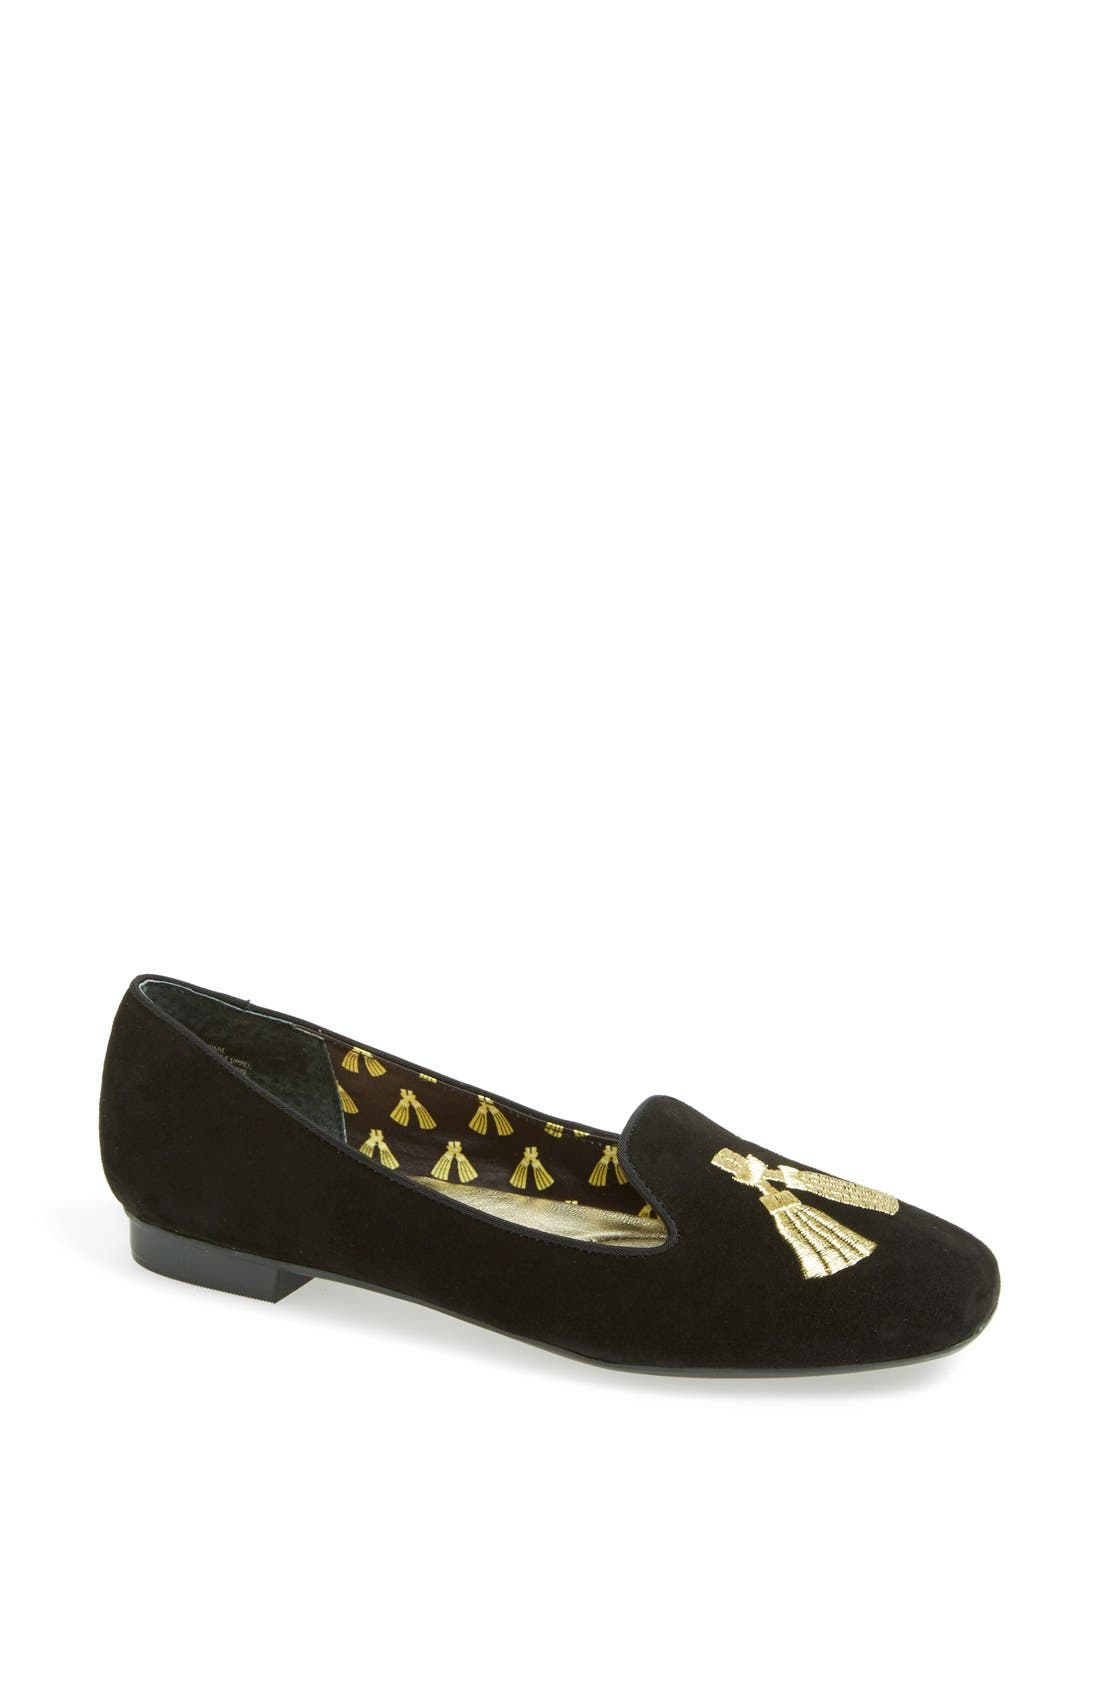 Alternate Image 1 Selected - Isaac Mizrahi New York 'Kimil' Smoking Slipper